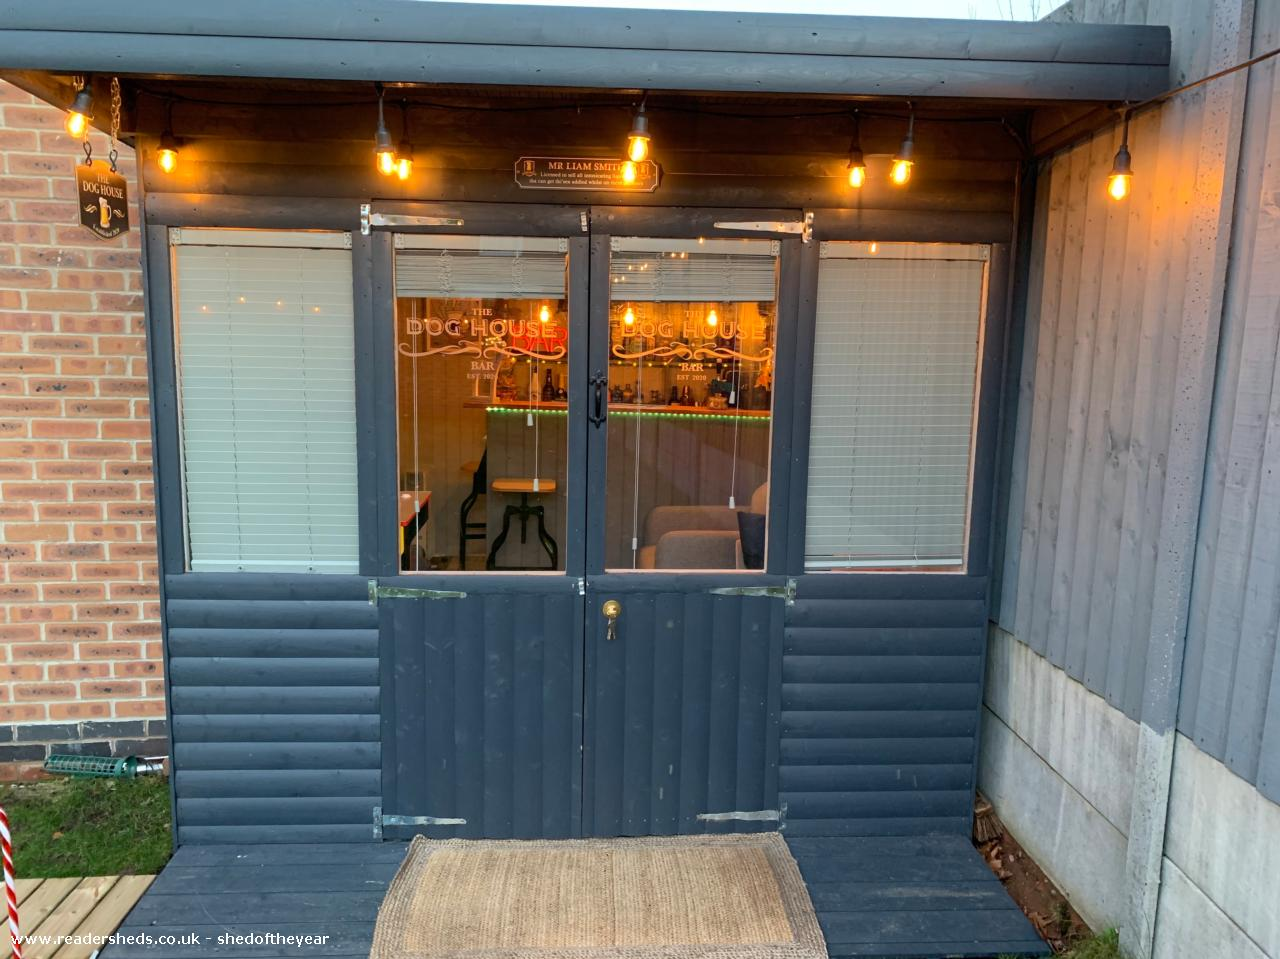 Photo of The Doghouse, entry to Shed of the year-Front View